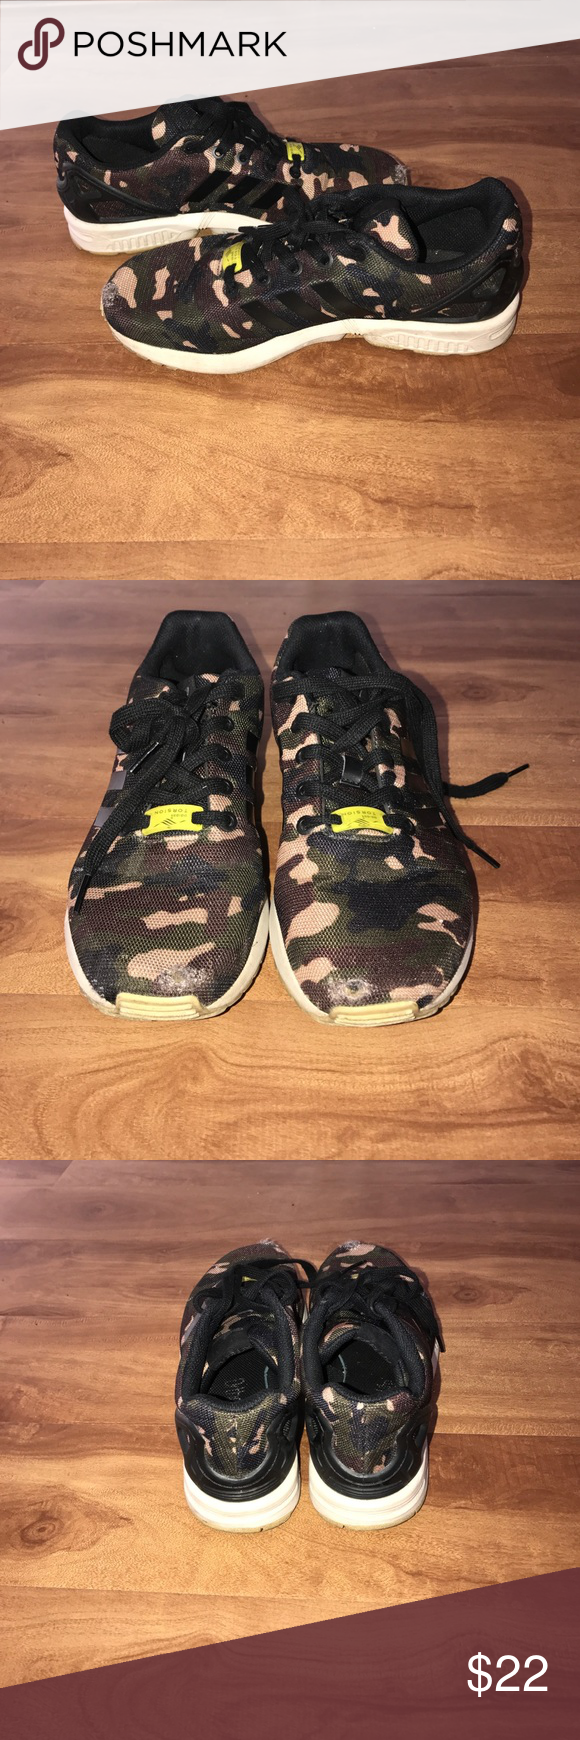 8a171ab9284f6 Adidas ZX Flux camo 4 10 condition. Main problem are wearing holes in toe  area. Size 6 boys YOUTH. 7.5-8 in women s Adidas Shoes Sneakers